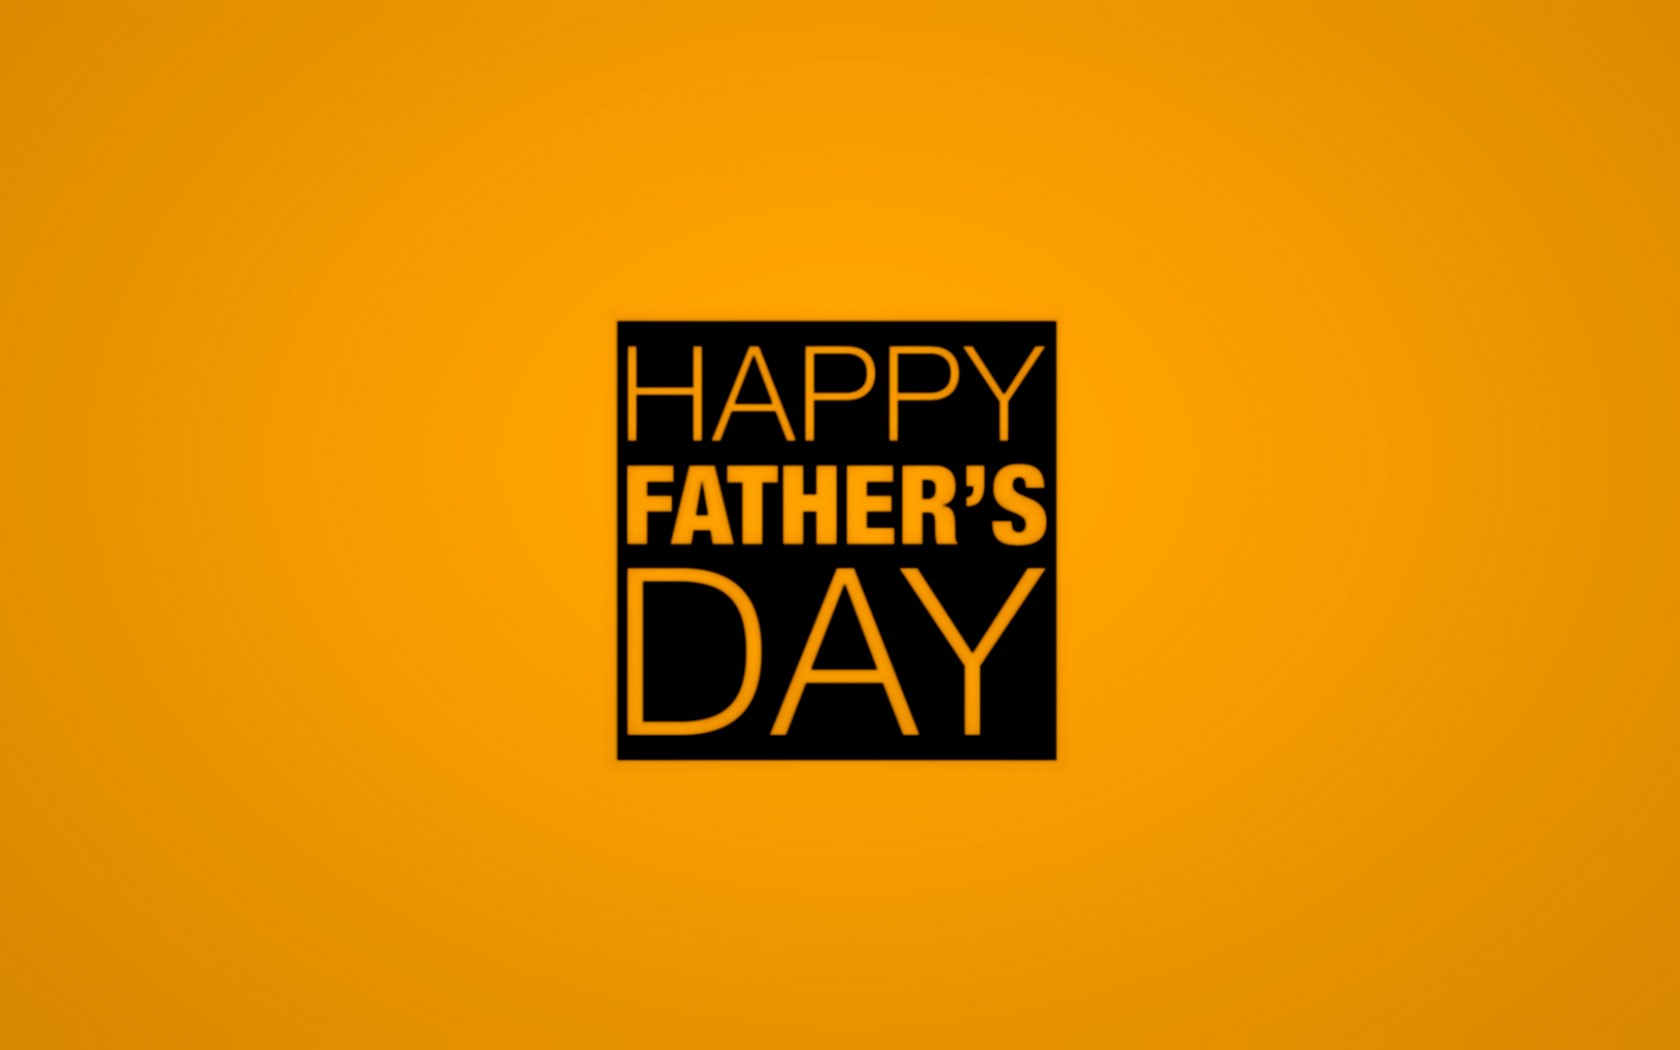 Happy Fathers Day Wallpapers download 1680x1050